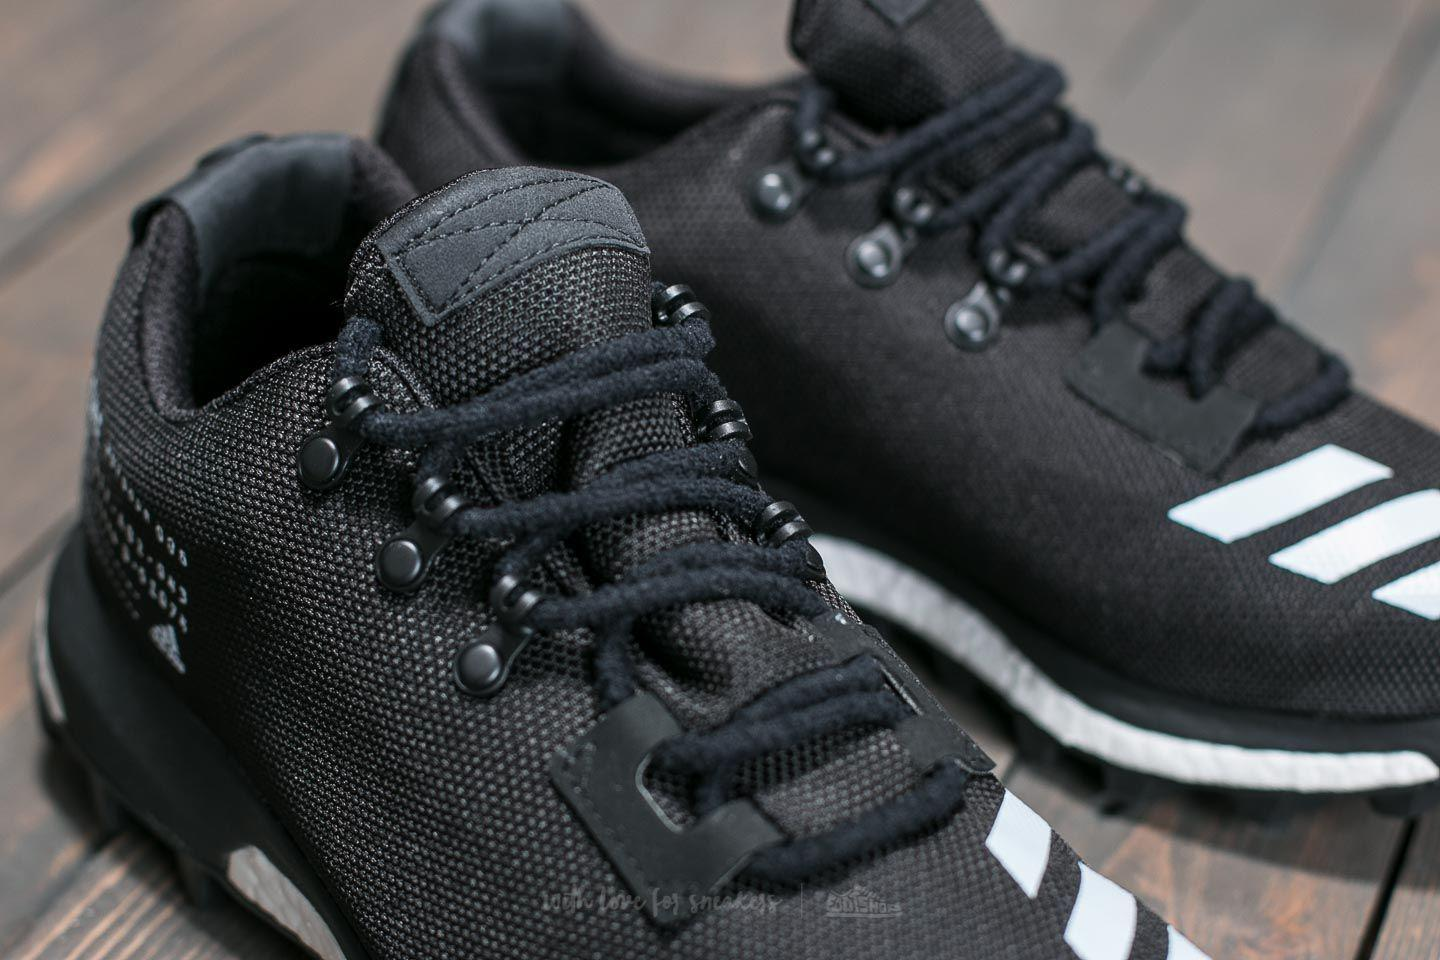 promo code 9fa2a e1422 Lyst - Footshop Adidas Day One Terrex Agravic Black White in